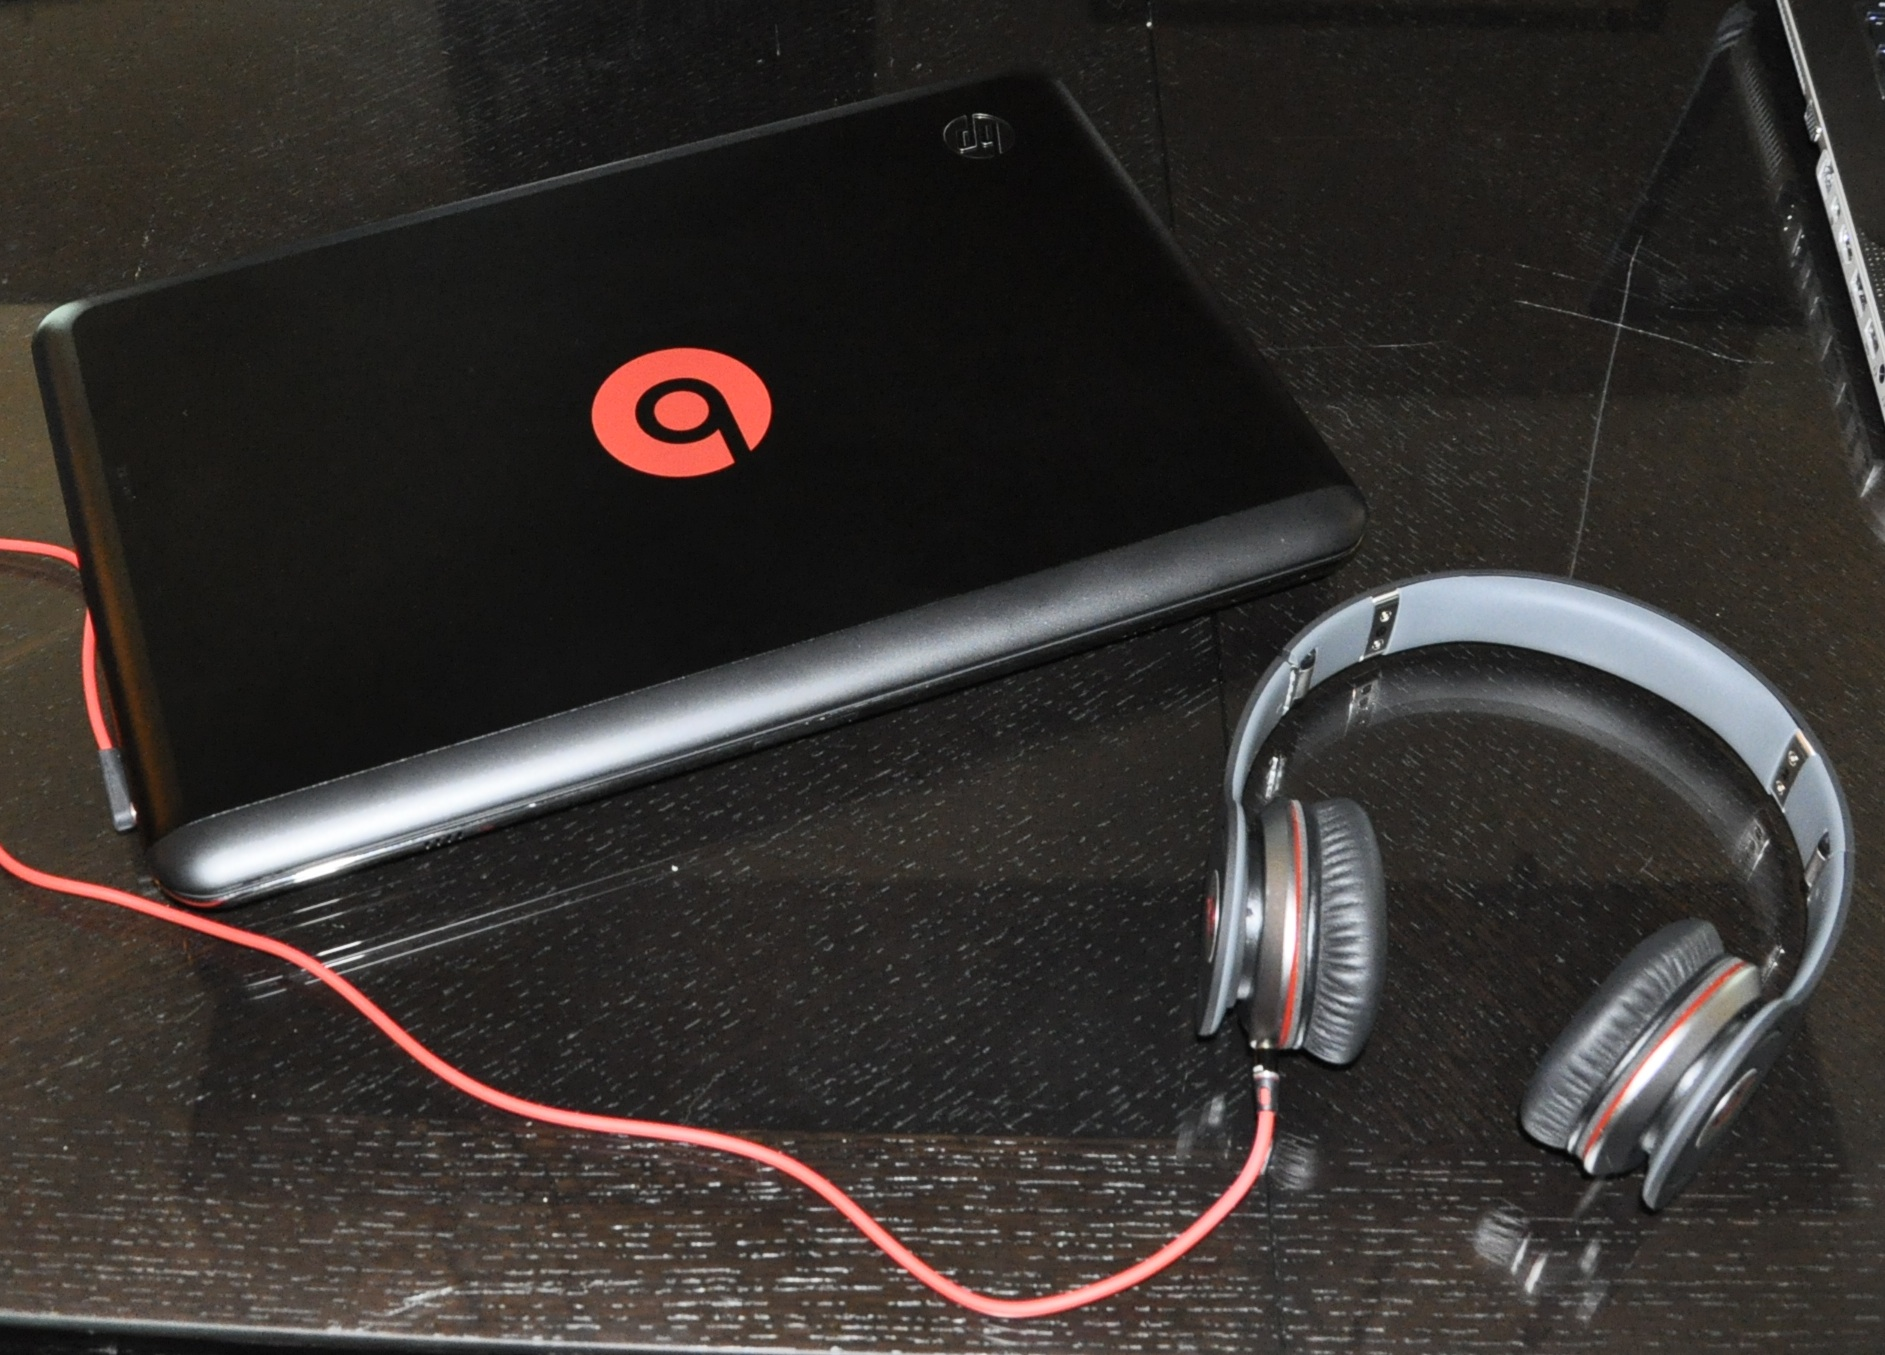 HP ENVY 14 Beats Edition Comes with Solo Headphones 1885x1355